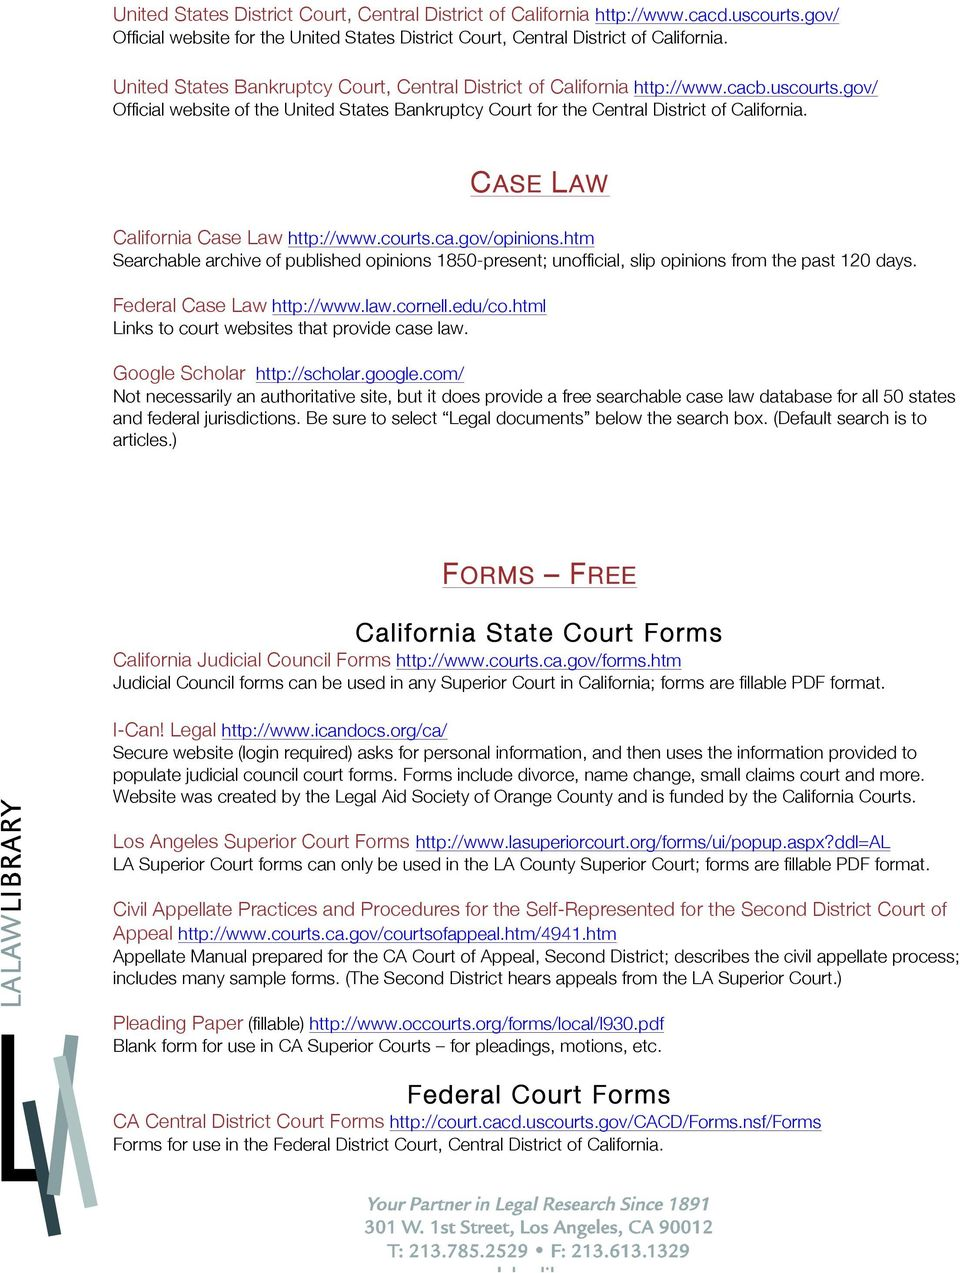 CASE LAW California Case Law http://www.courts.ca.gov/opinions.htm Searchable archive of published opinions 1850-present; unofficial, slip opinions from the past 120 days. Federal Case Law http://www.